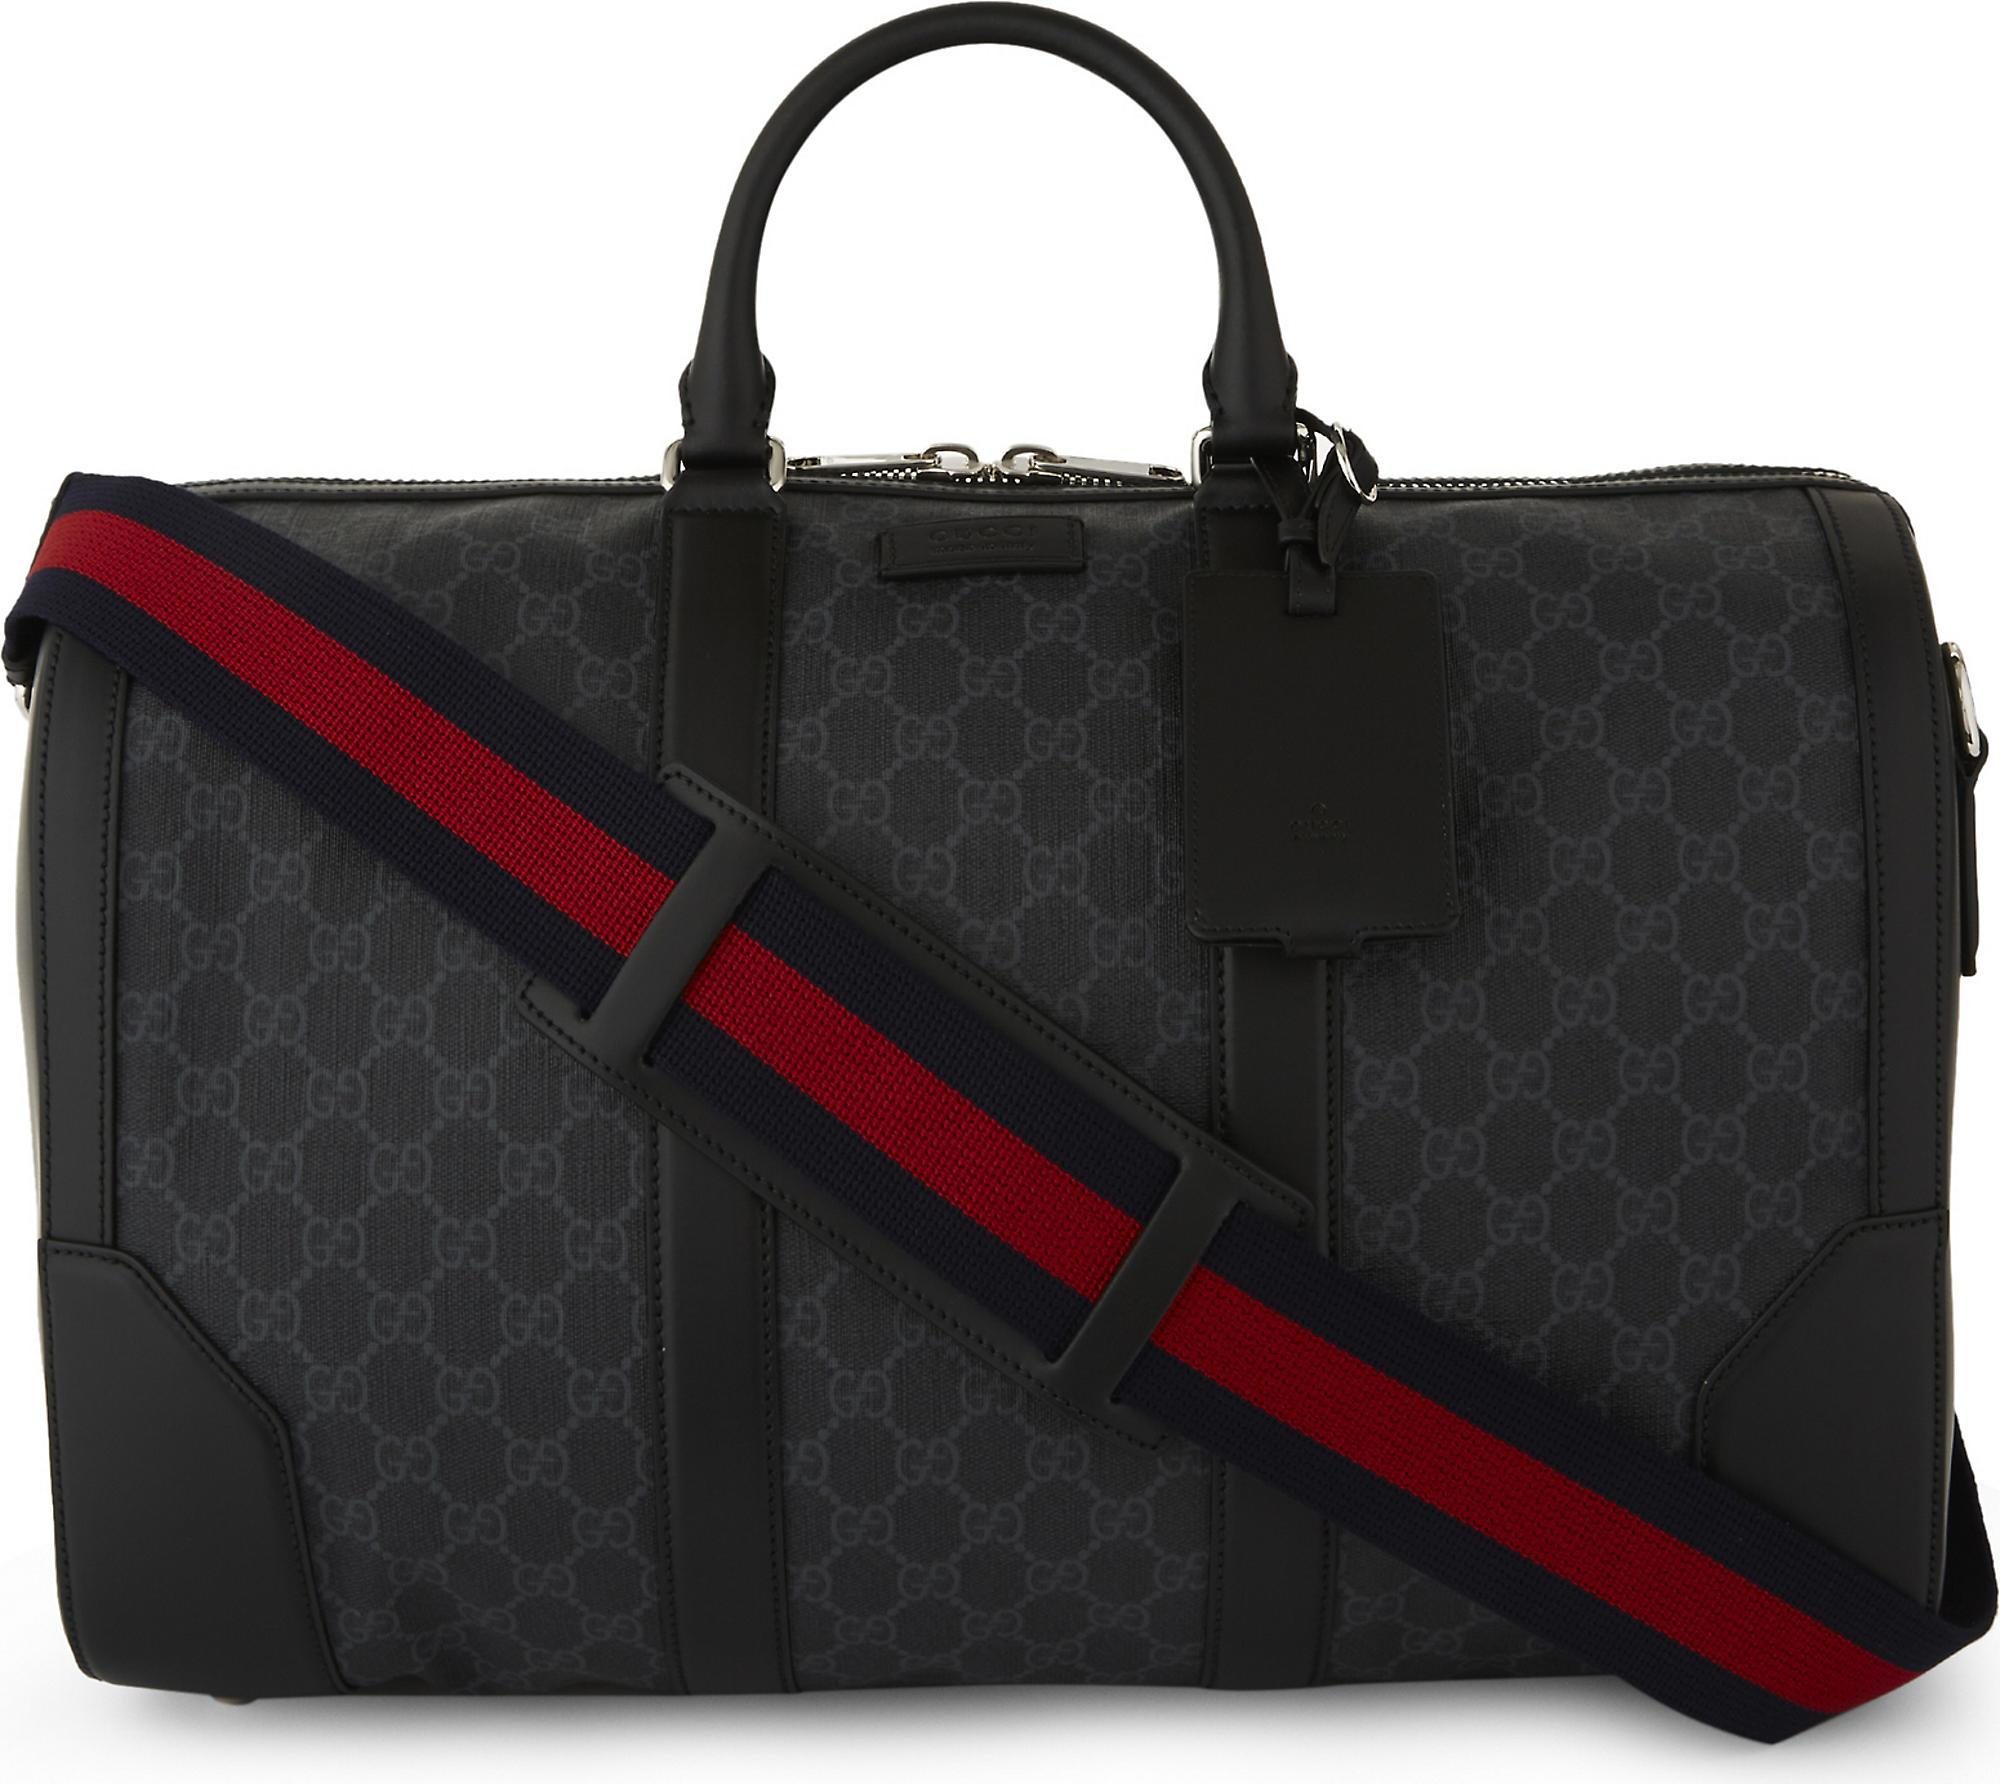 d09a1c1a790 Lyst - Gucci Supreme Canvas And Leather Duffle Bag in Black for Men